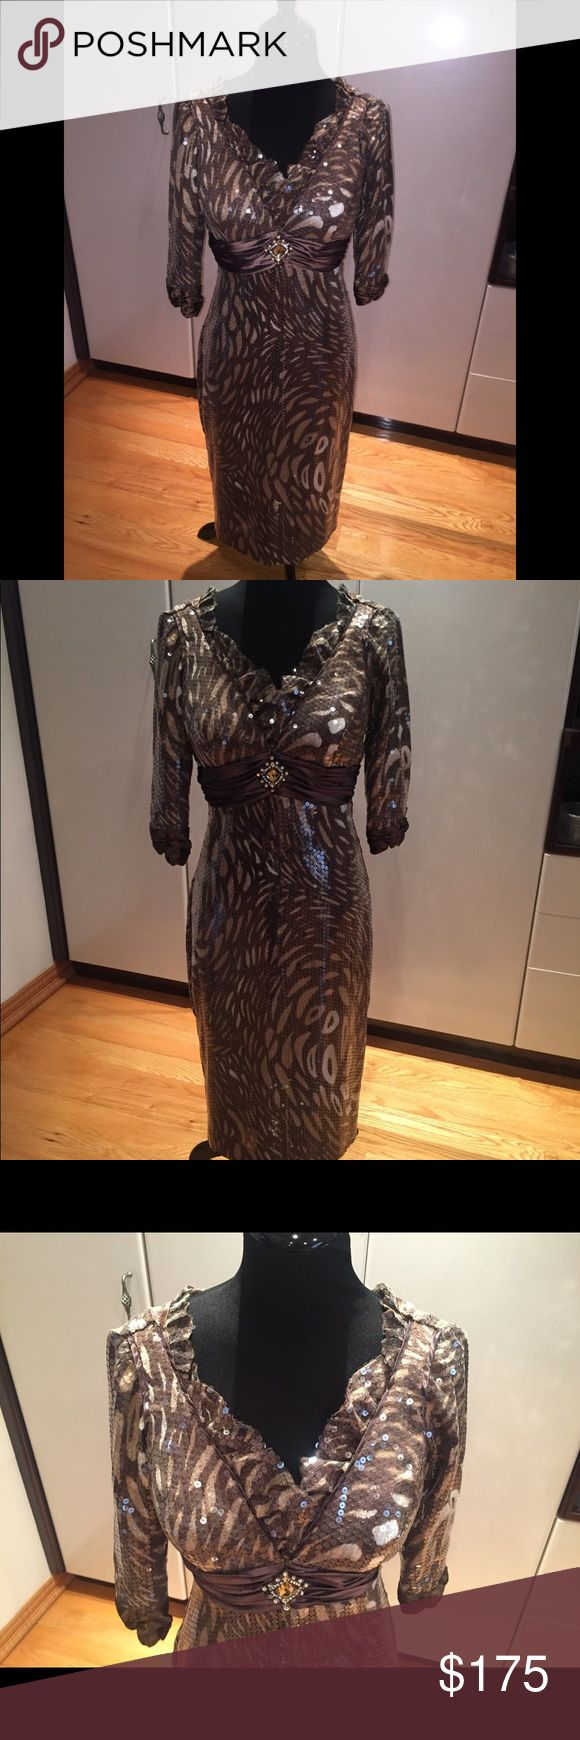 "Brown Animal print Sequin Elegant Evening Dress 6 Beautiful Brown Sequin Animal 🦓 print Elegant Evening Dress in size 6. Fully lined. Had some alterations done: Shortened length, added on 3/4 sleeves and ruffles.  Measurements: Length about 43"" Annabelle Dresses Wedding"